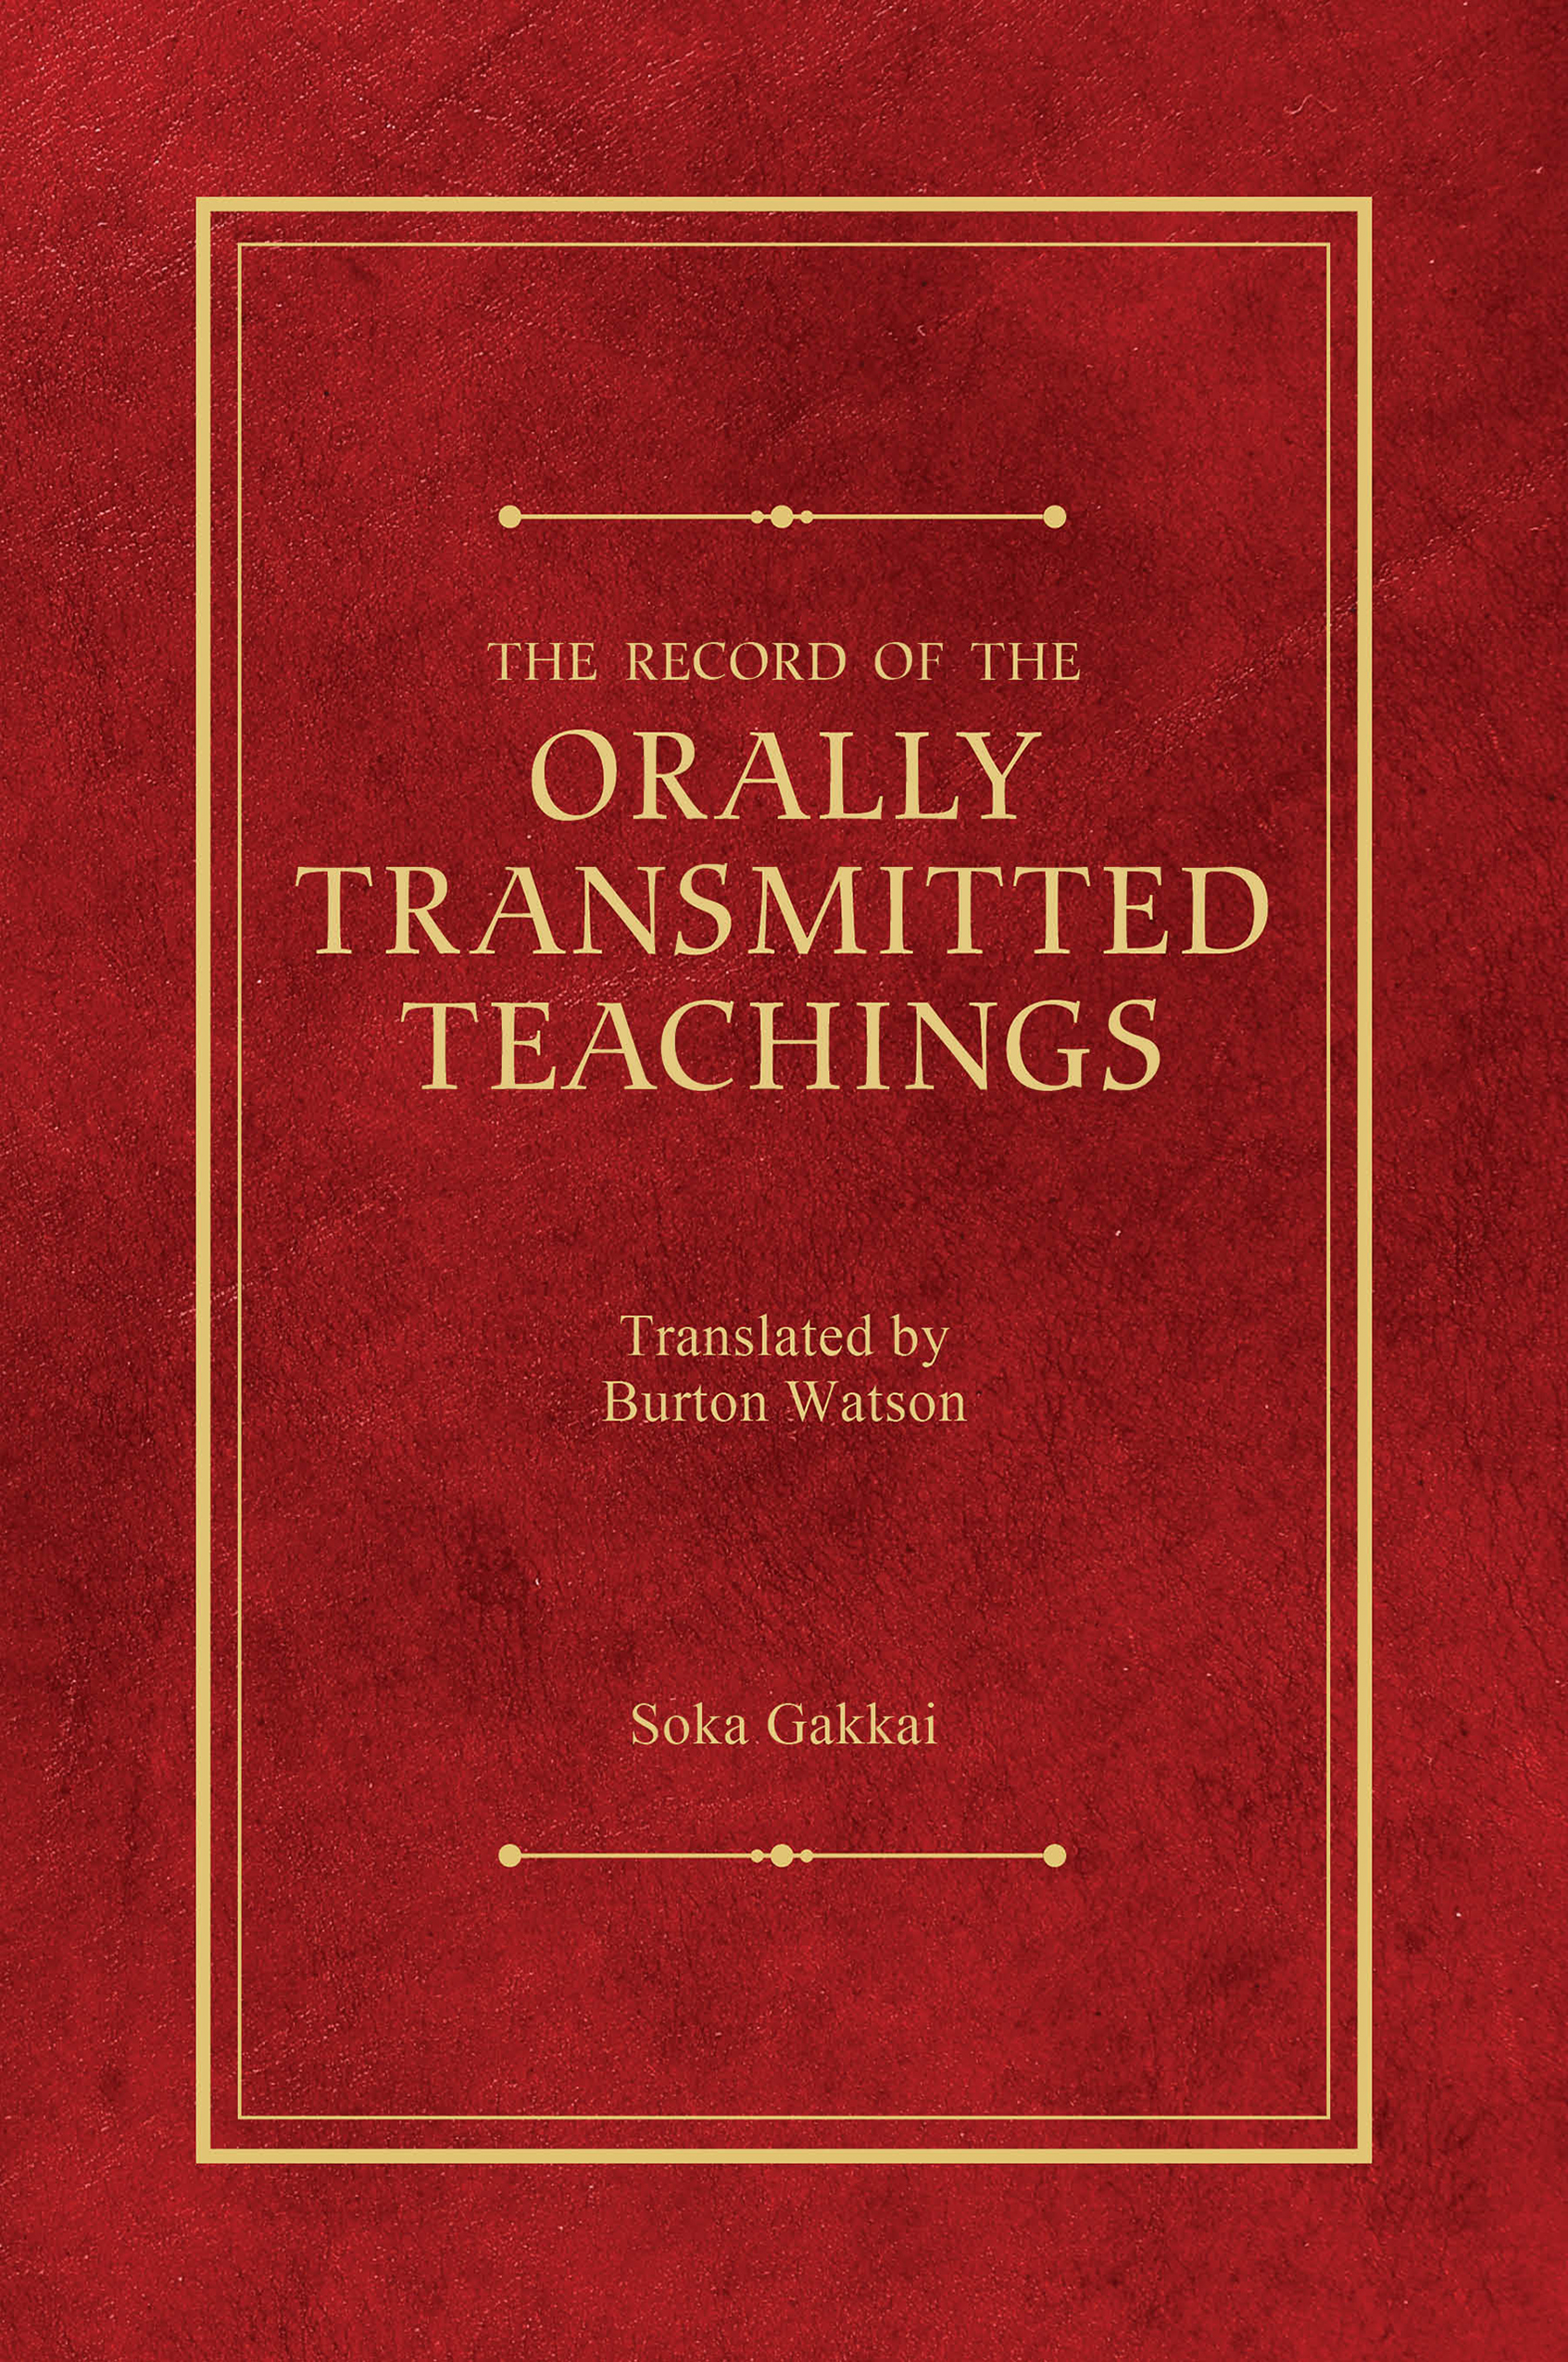 THE RECORD OF THE ORALLY TRANSMITTED TEACHINGS